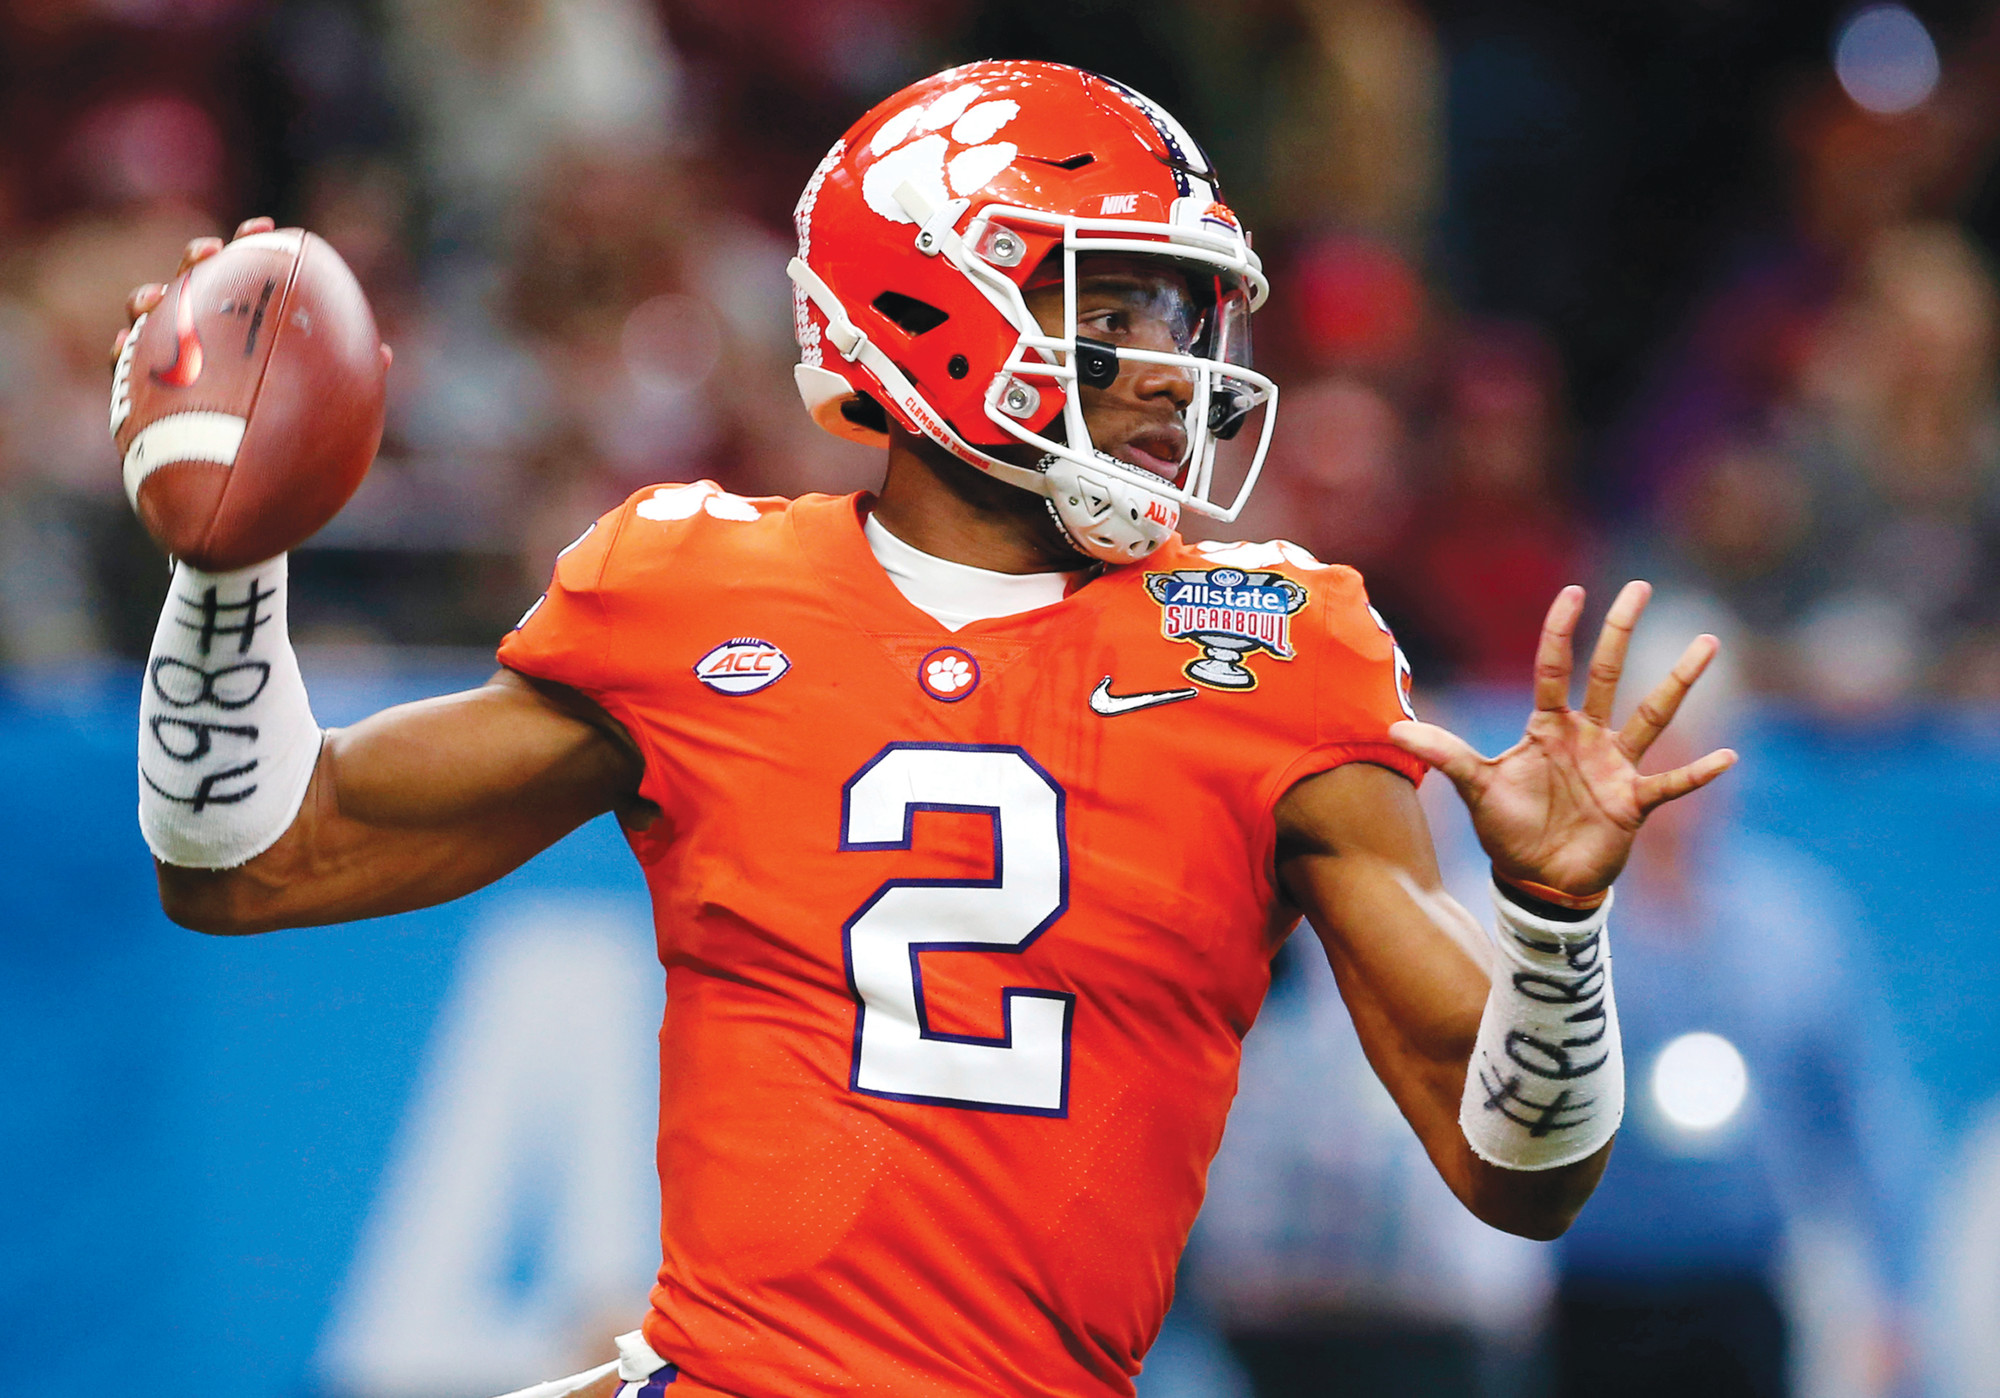 FILE - In this Jan. 1, 2018, file photo, Clemson quarterback Kelly Bryant (2) passes in the first half of the Sugar Bowl NCAA college football bowl game against Alabama, in New Orleans. Veteran Kelly Bryant is Clemson's starting quarterback, holding off promising freshman Trevor Lawrence. The second-ranked Tigers open the season Saturday at home against Furman. The team released its first depth chart Monday, Aug. 27, 2018, with Bryant on top in the closely watched competition.